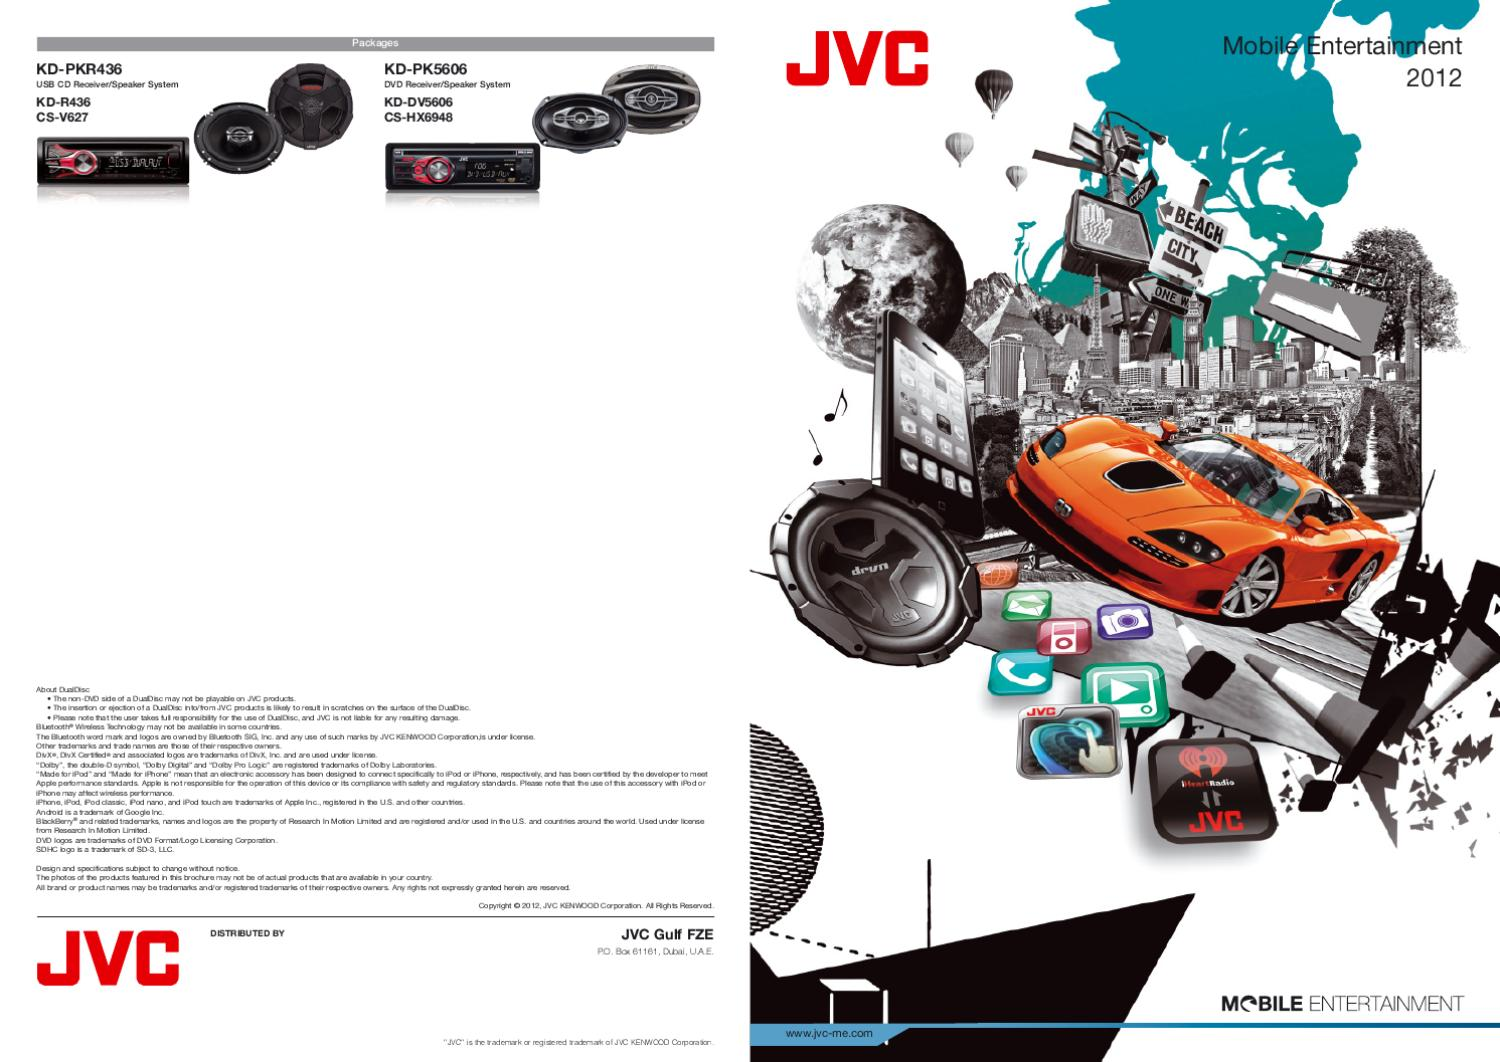 page_1 2012 jvc gulf car audio catalog by jvc gulf fze issuu  at crackthecode.co